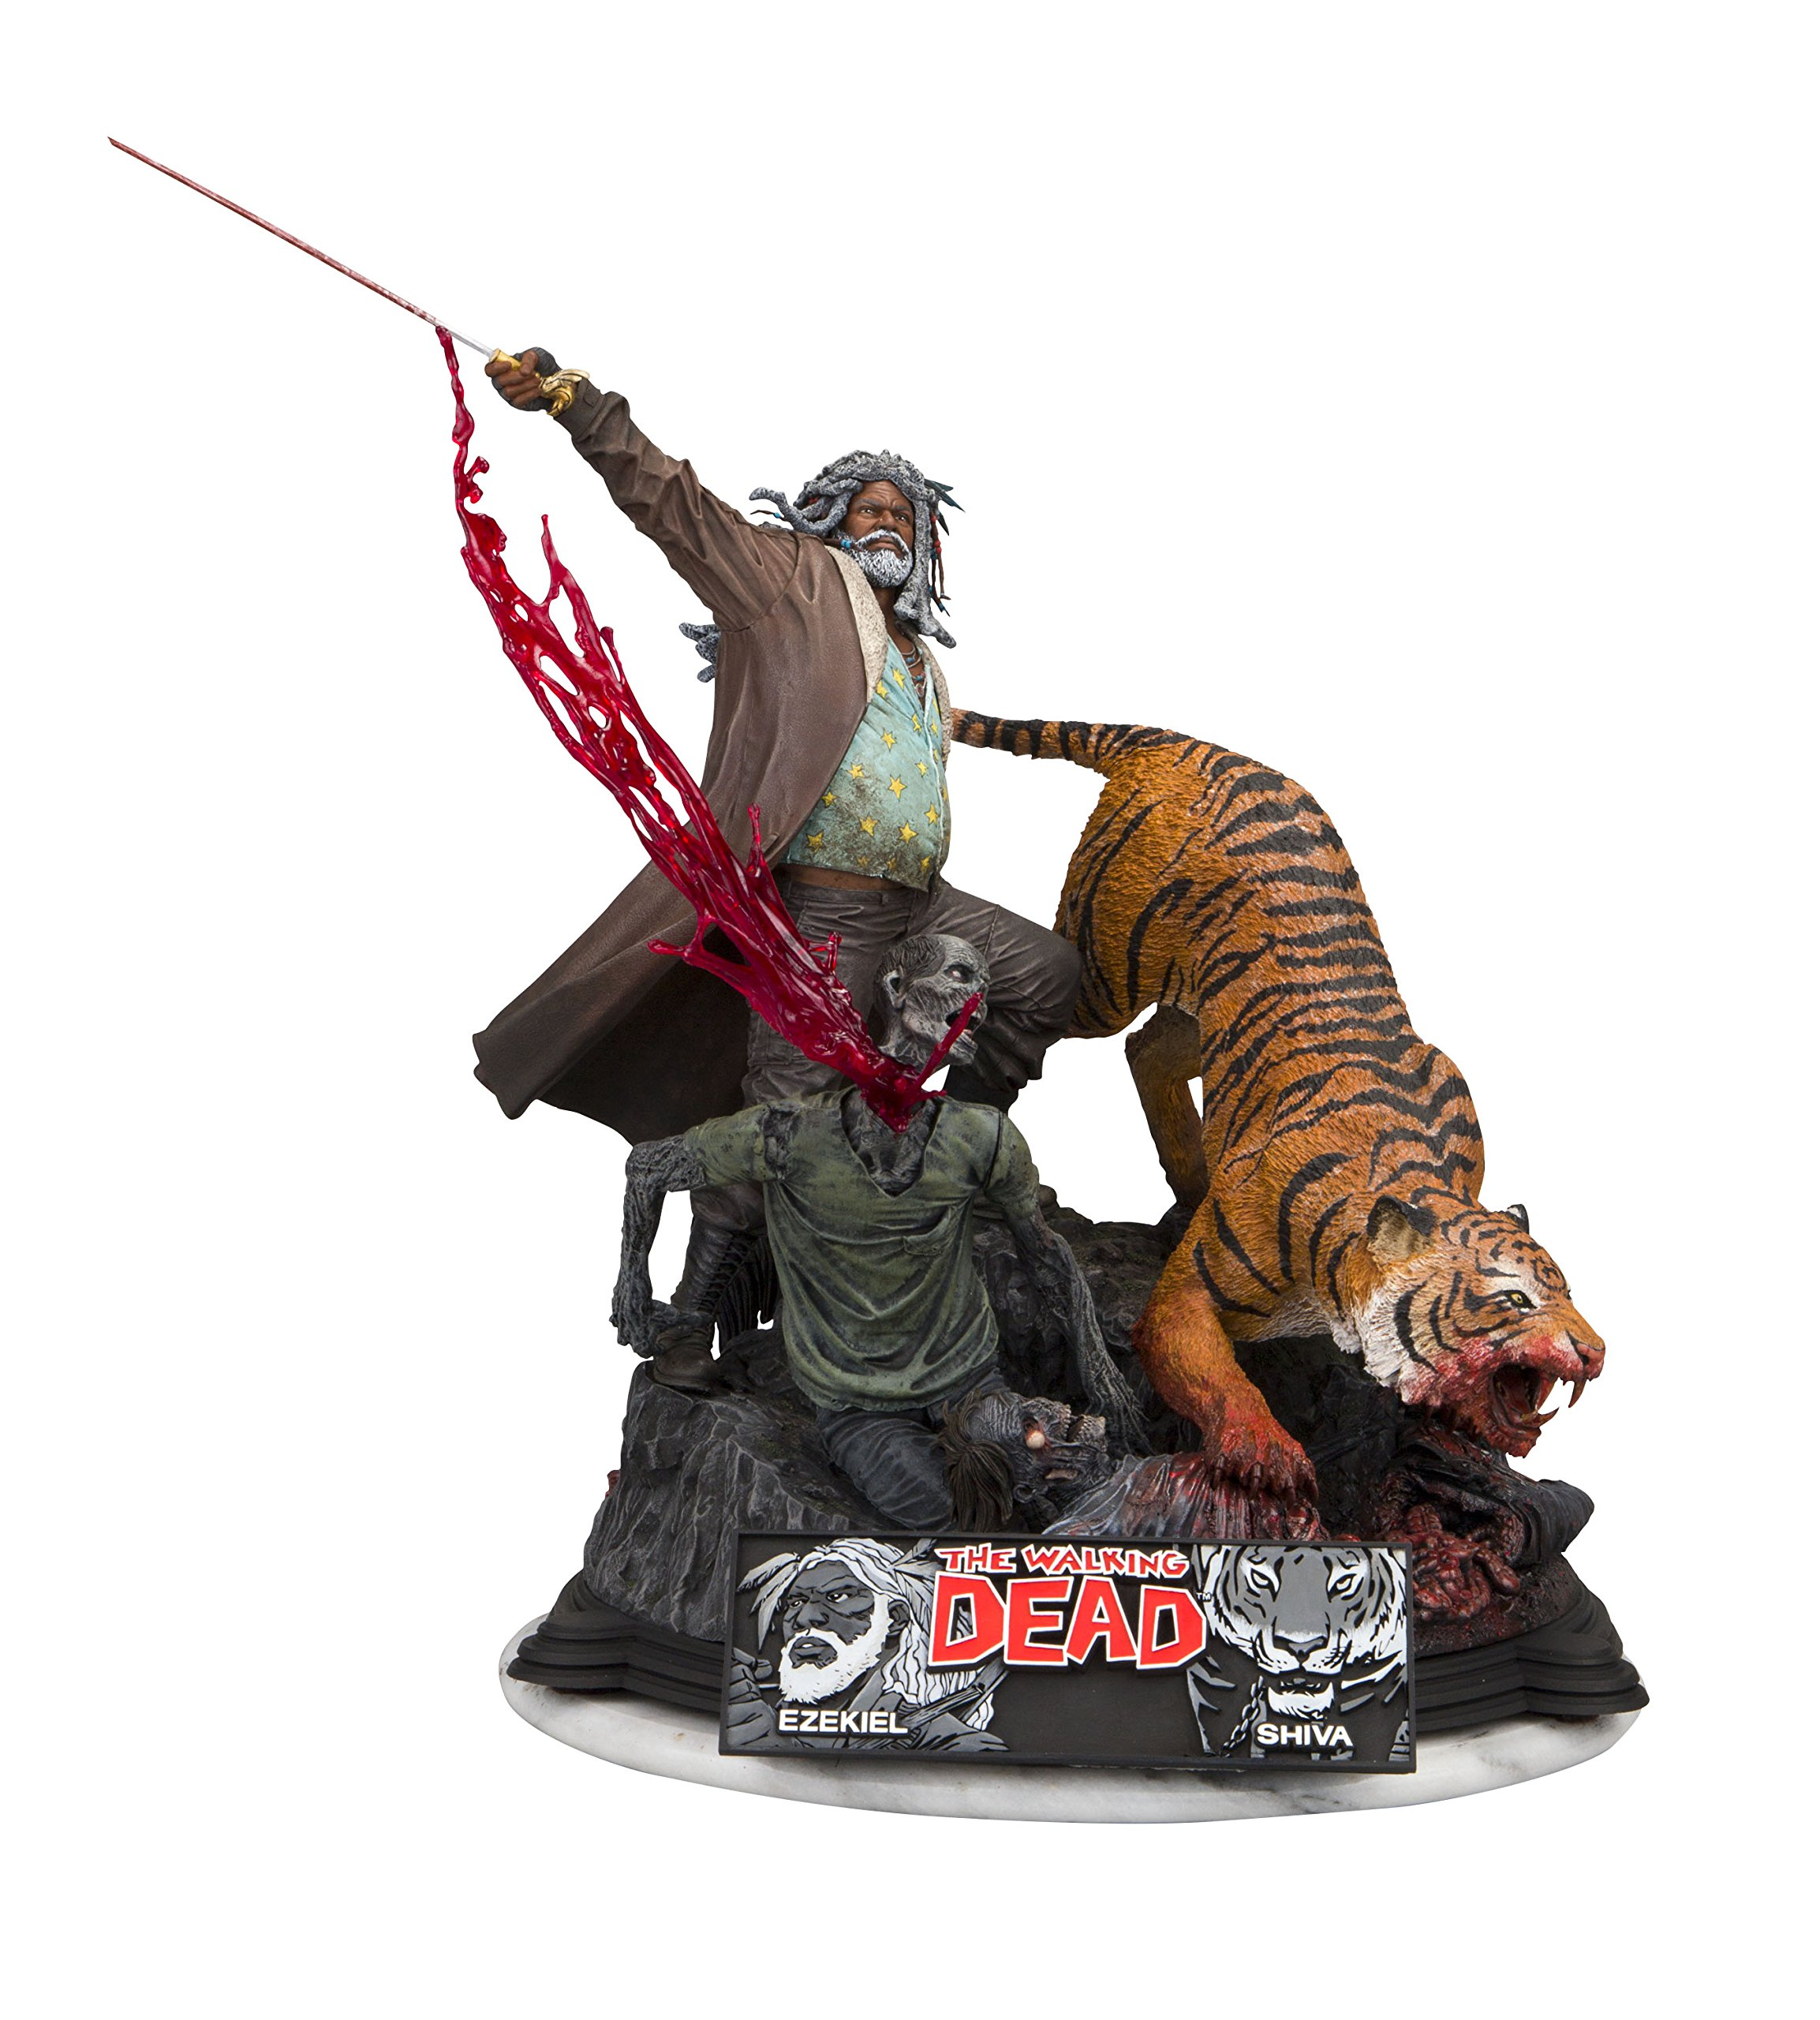 McFarlane Toys the Walking Dead Ezekiel and Shiva Limited Edition Resin Statue Action Figure